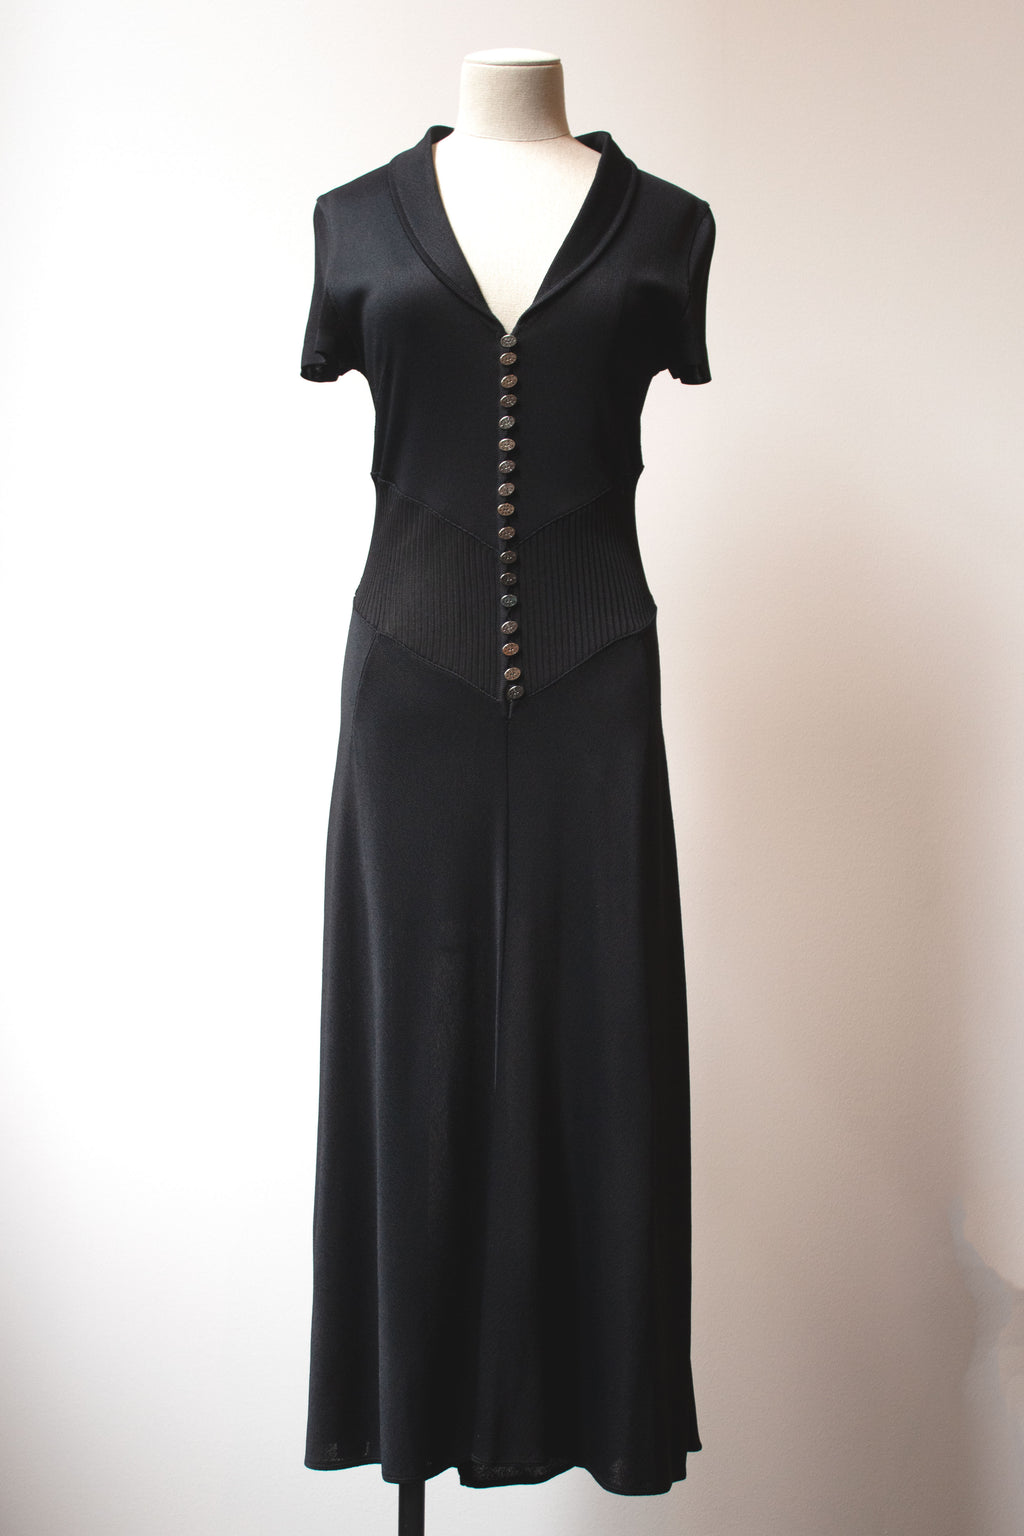 Karl Lagerfeld black rayon knit maxi dress